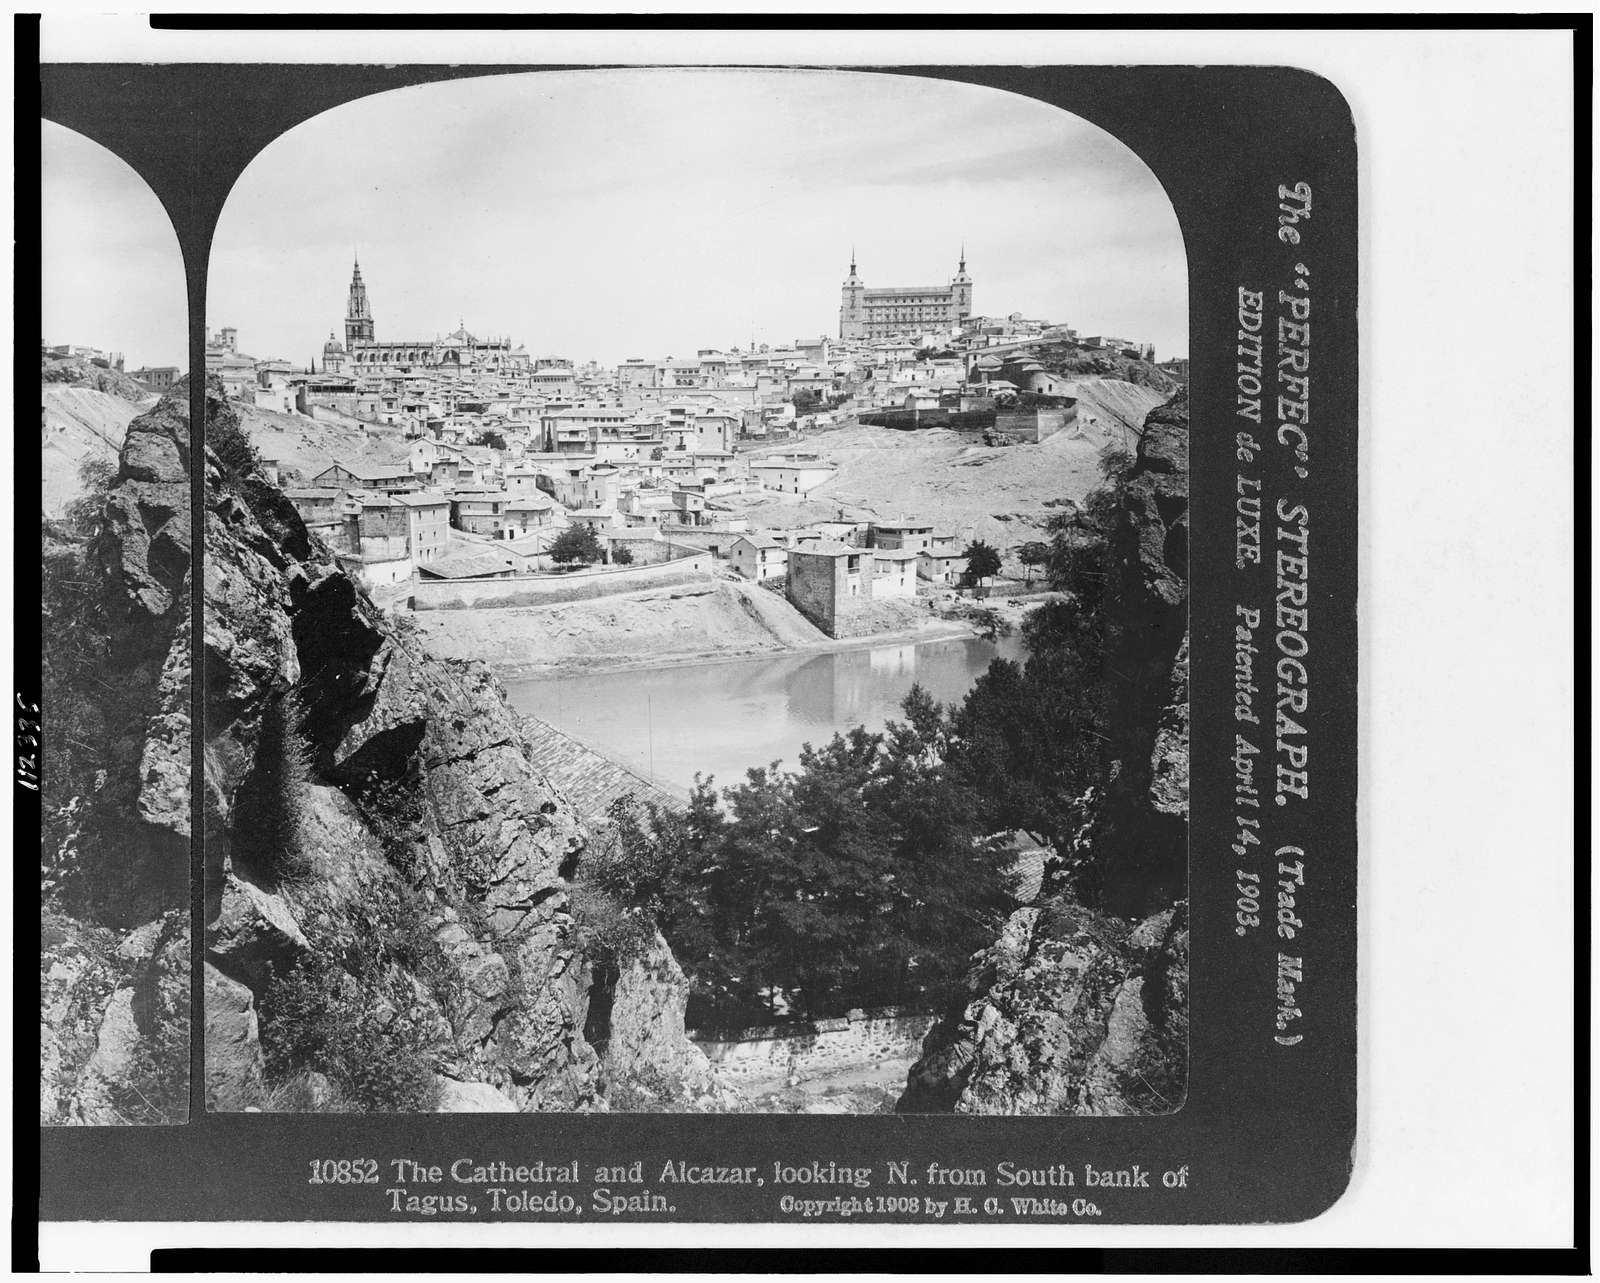 The cathedral and Alcazar, looking N. from south bank of Tagus, Toledo, Spain